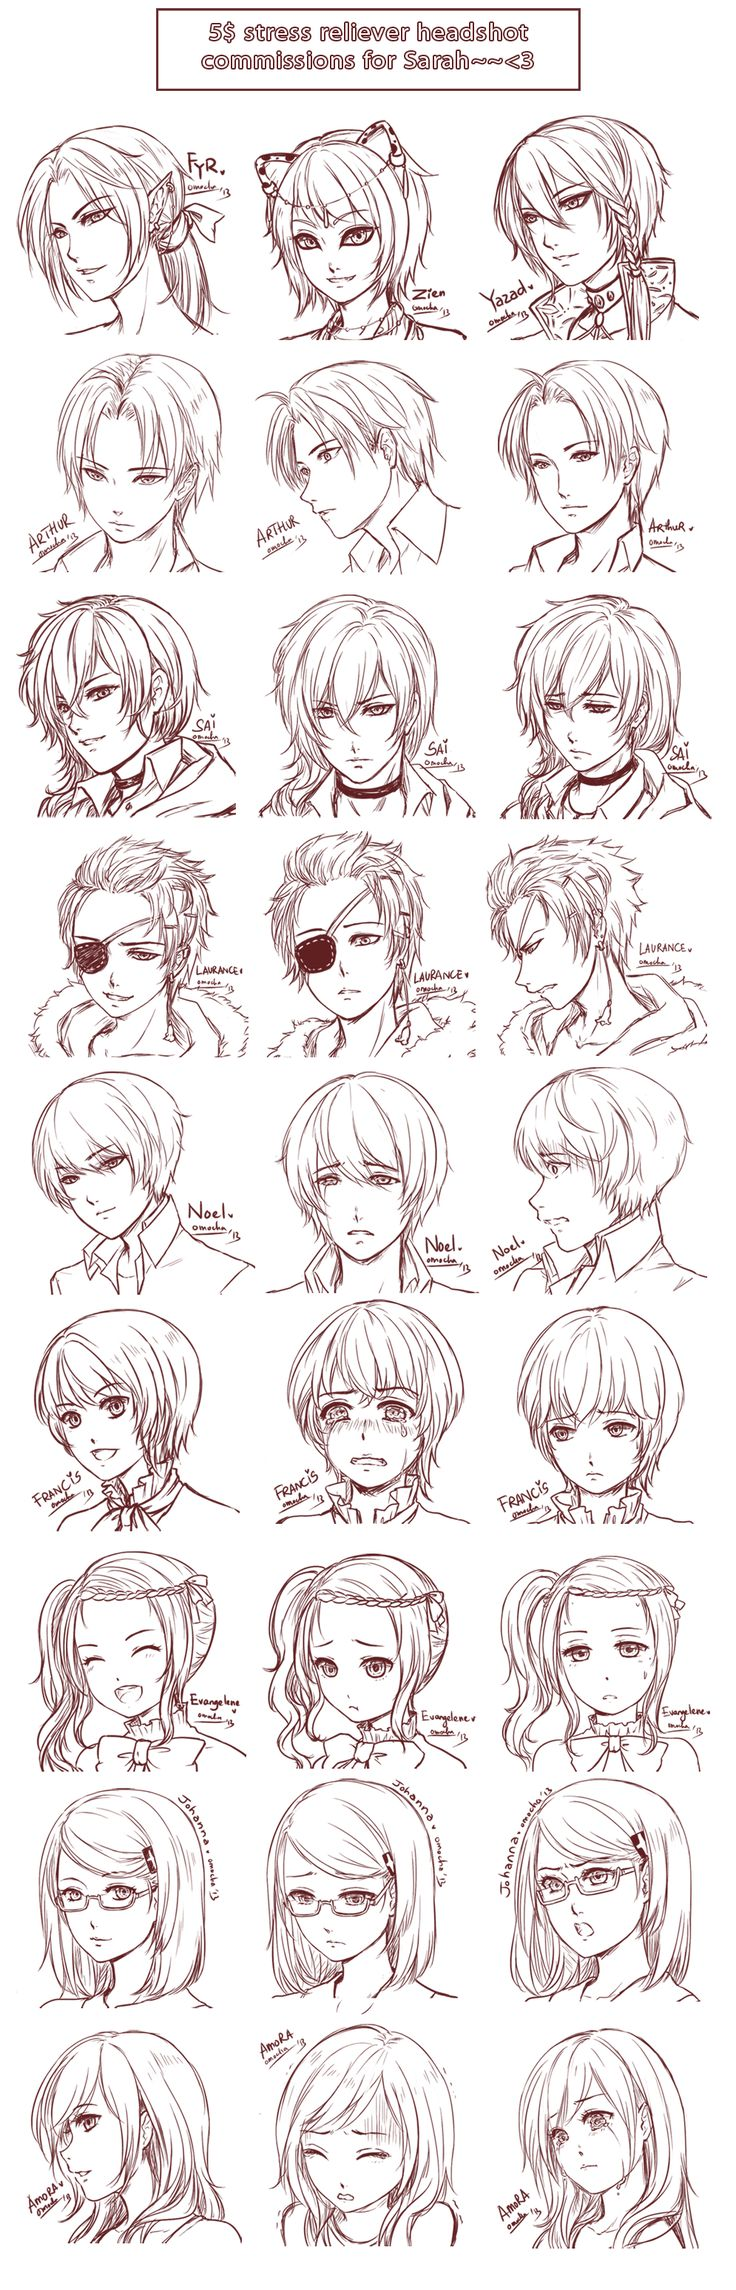 SRC - Batch 16 - From Sarah by omocha-san.deviantart.com on @deviantART